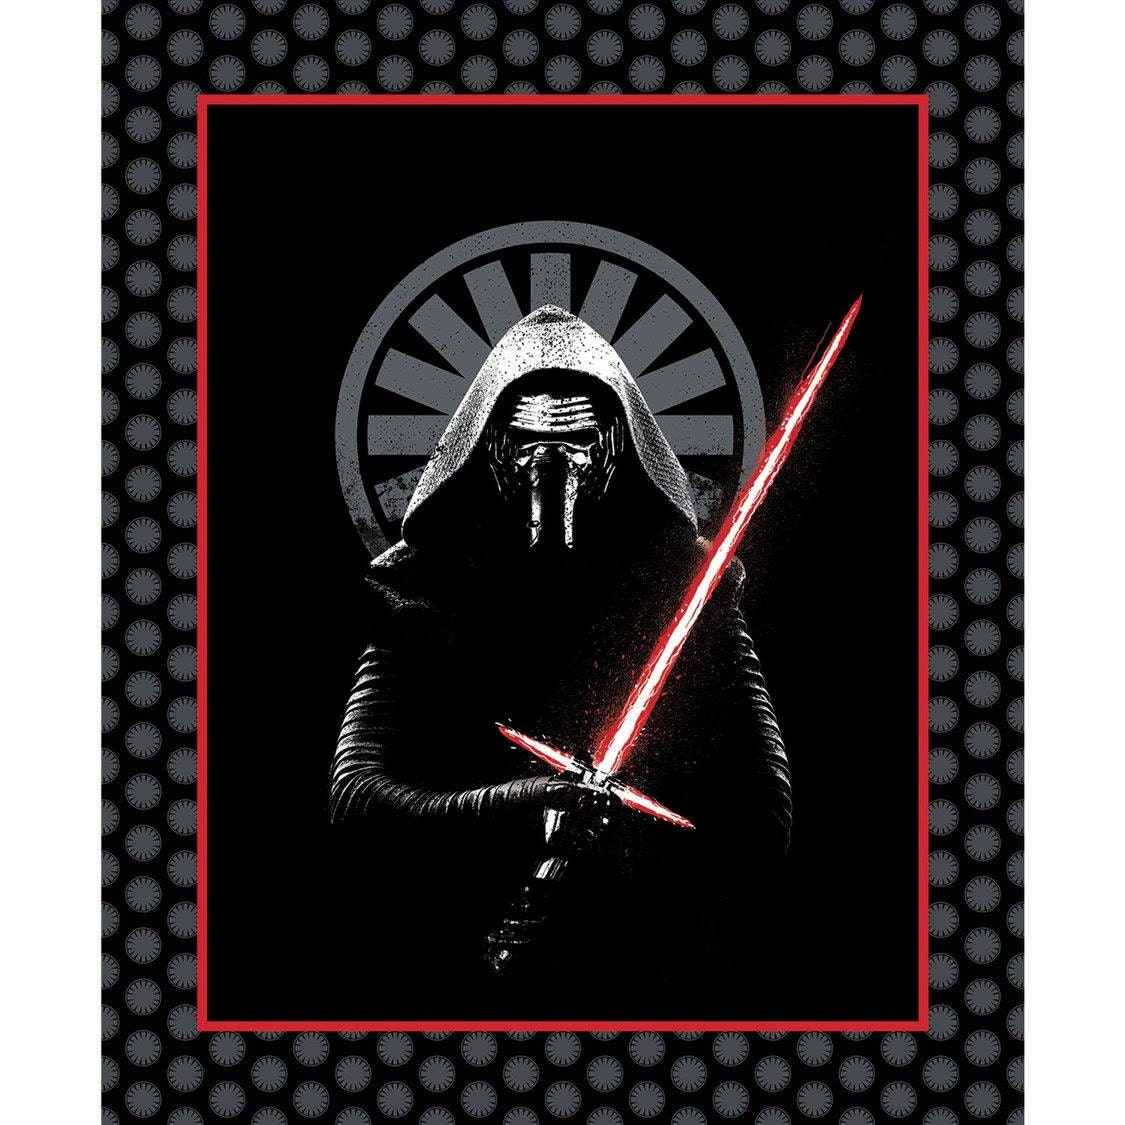 Camelot fabrics kylo ren star wars the force awakens for Star wars fabric